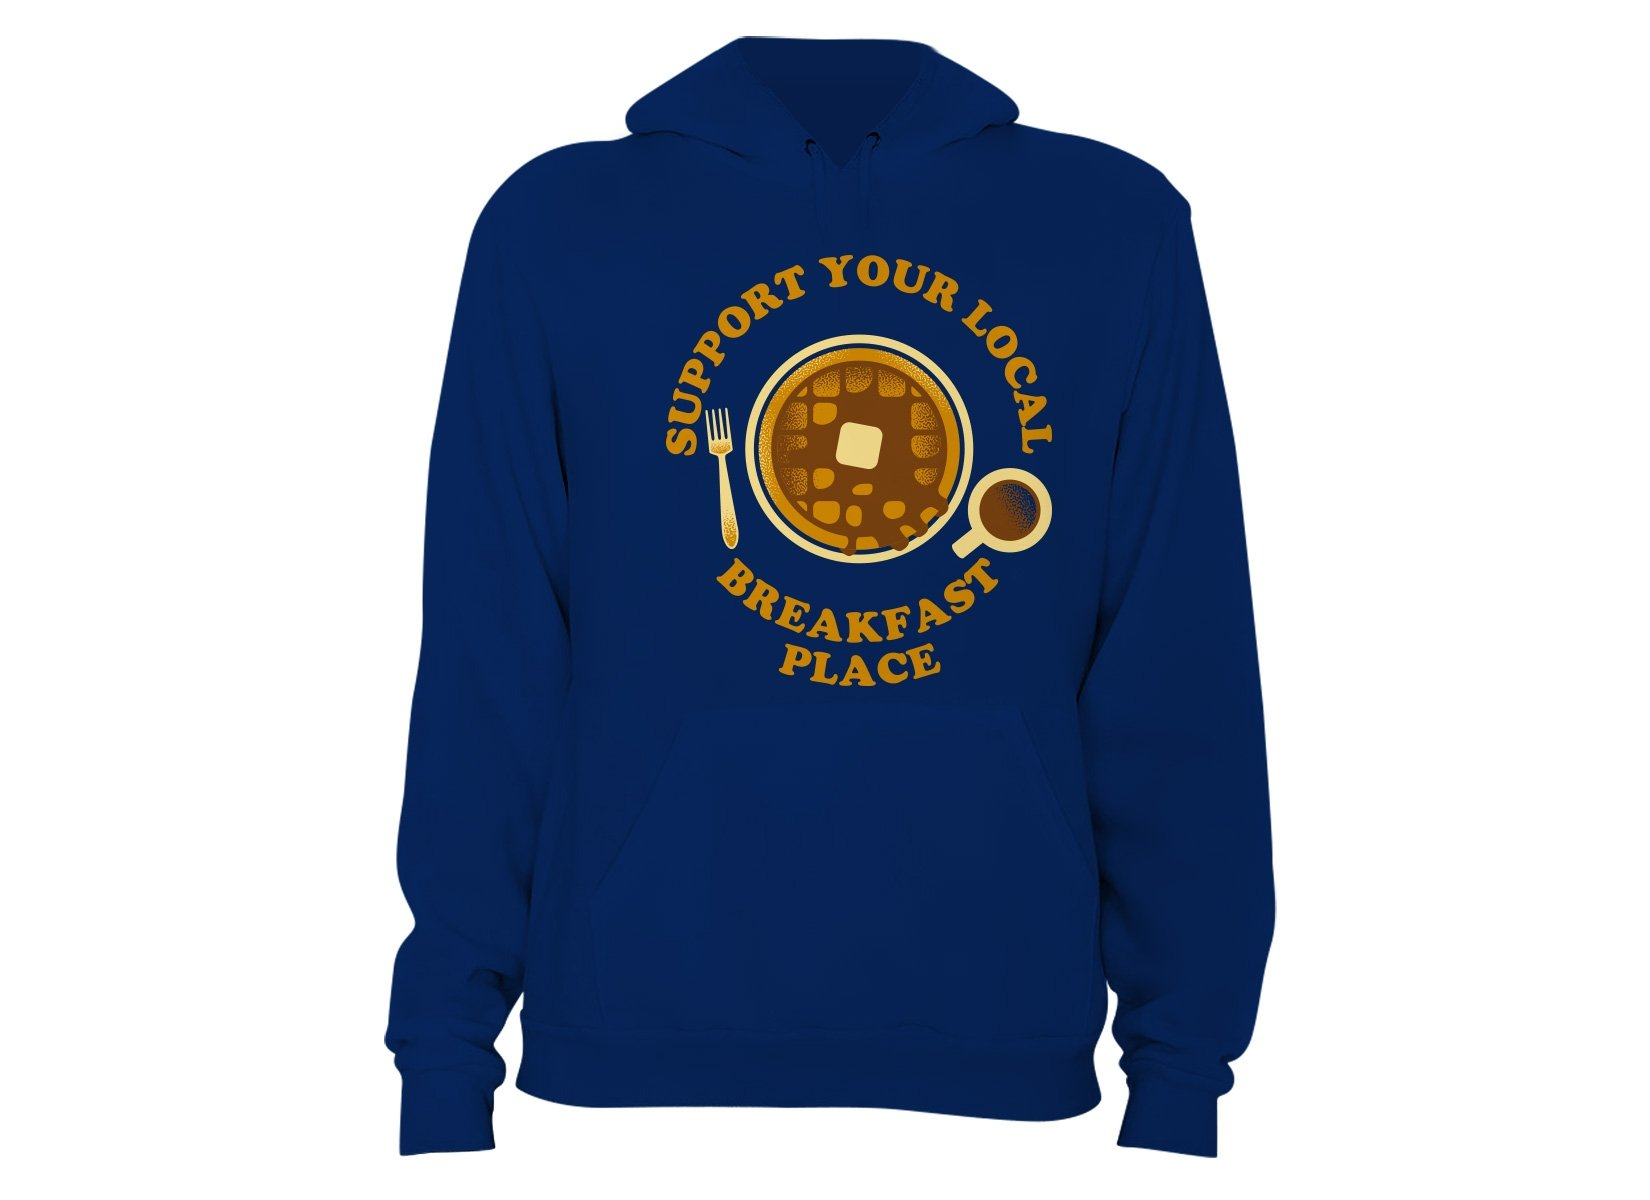 Support Your Local Breakfast Place on Hoodie